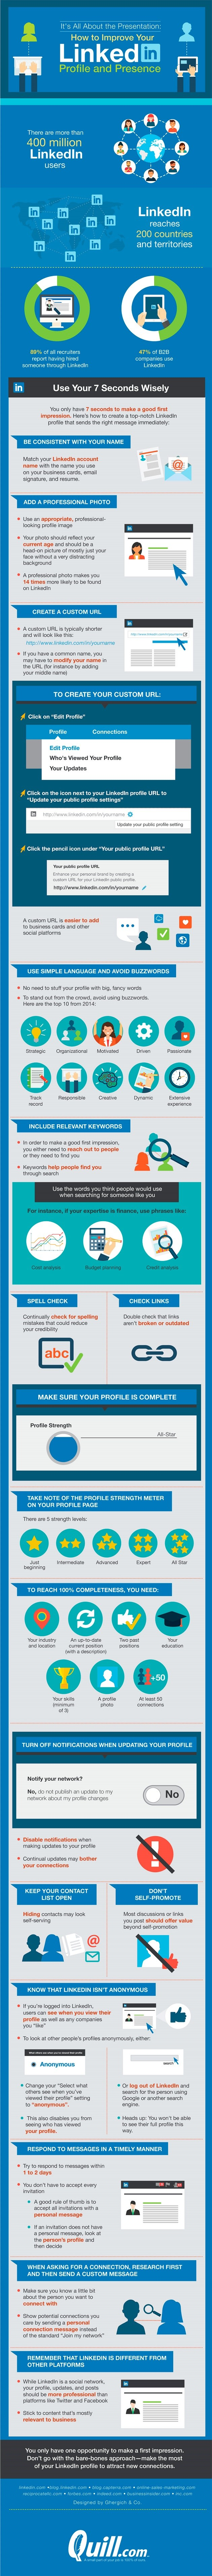 how-to-improve-your-linkedin-profile-presence-infographic